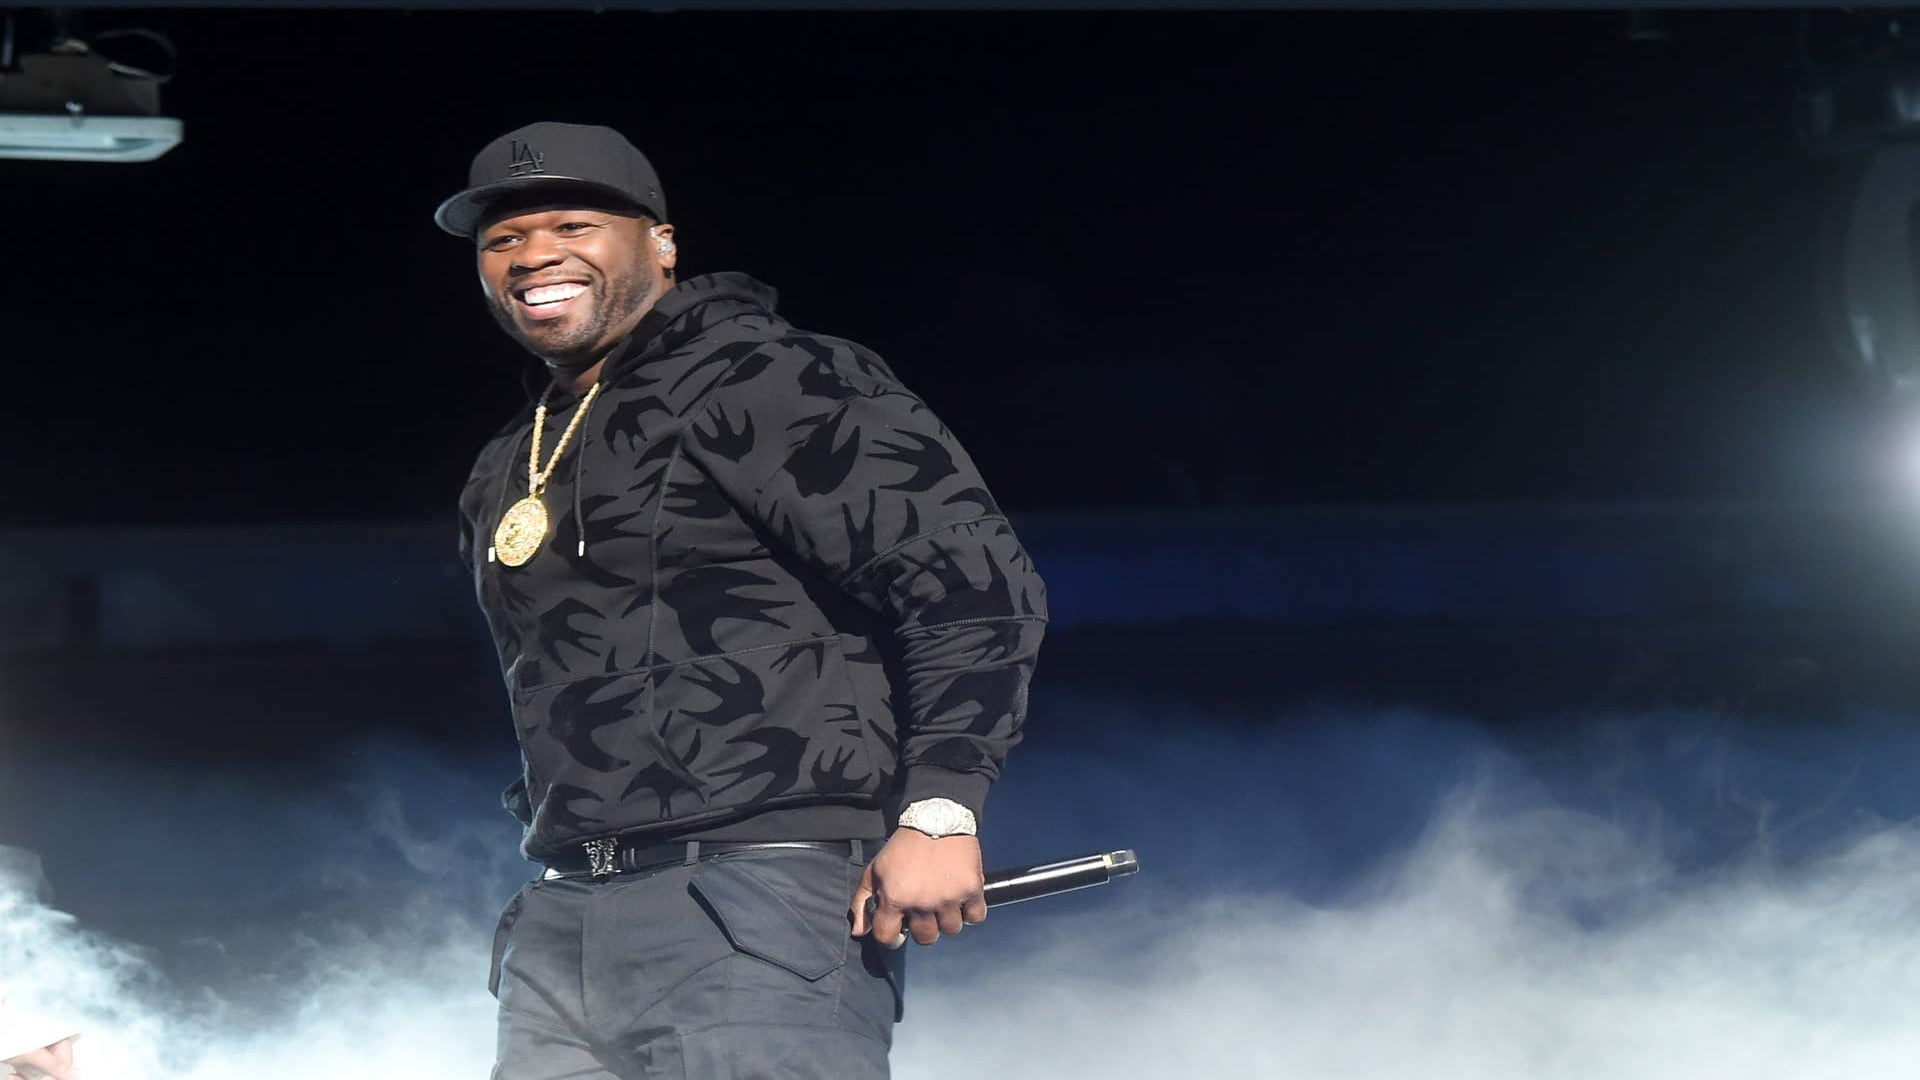 50 Cent Plans To Take Legal Action Against NYPD Officer Who Wanted Him Shot 'On Sight'